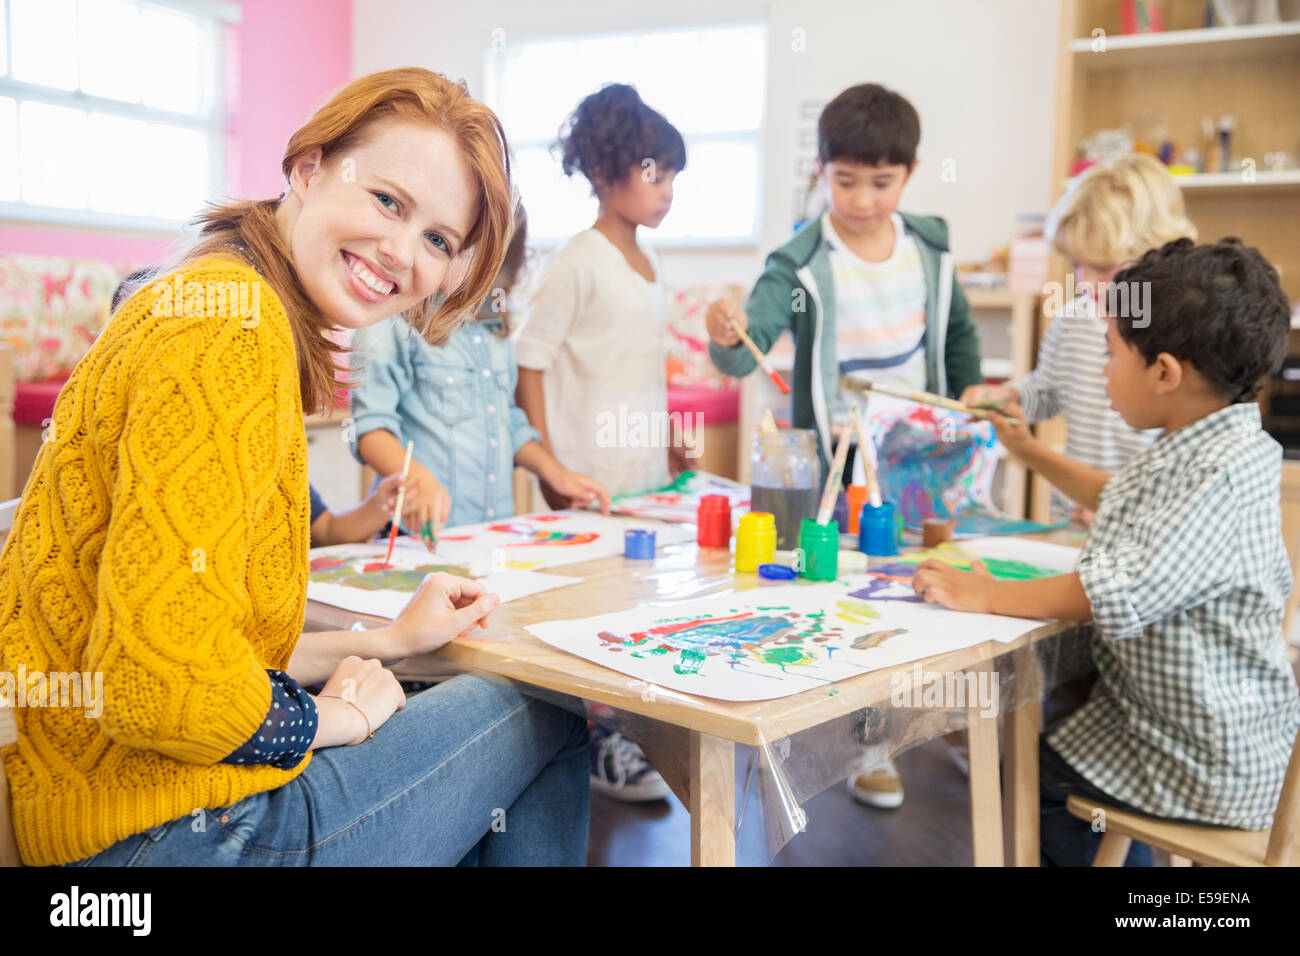 Teacher and students painting in classroom - Stock Image